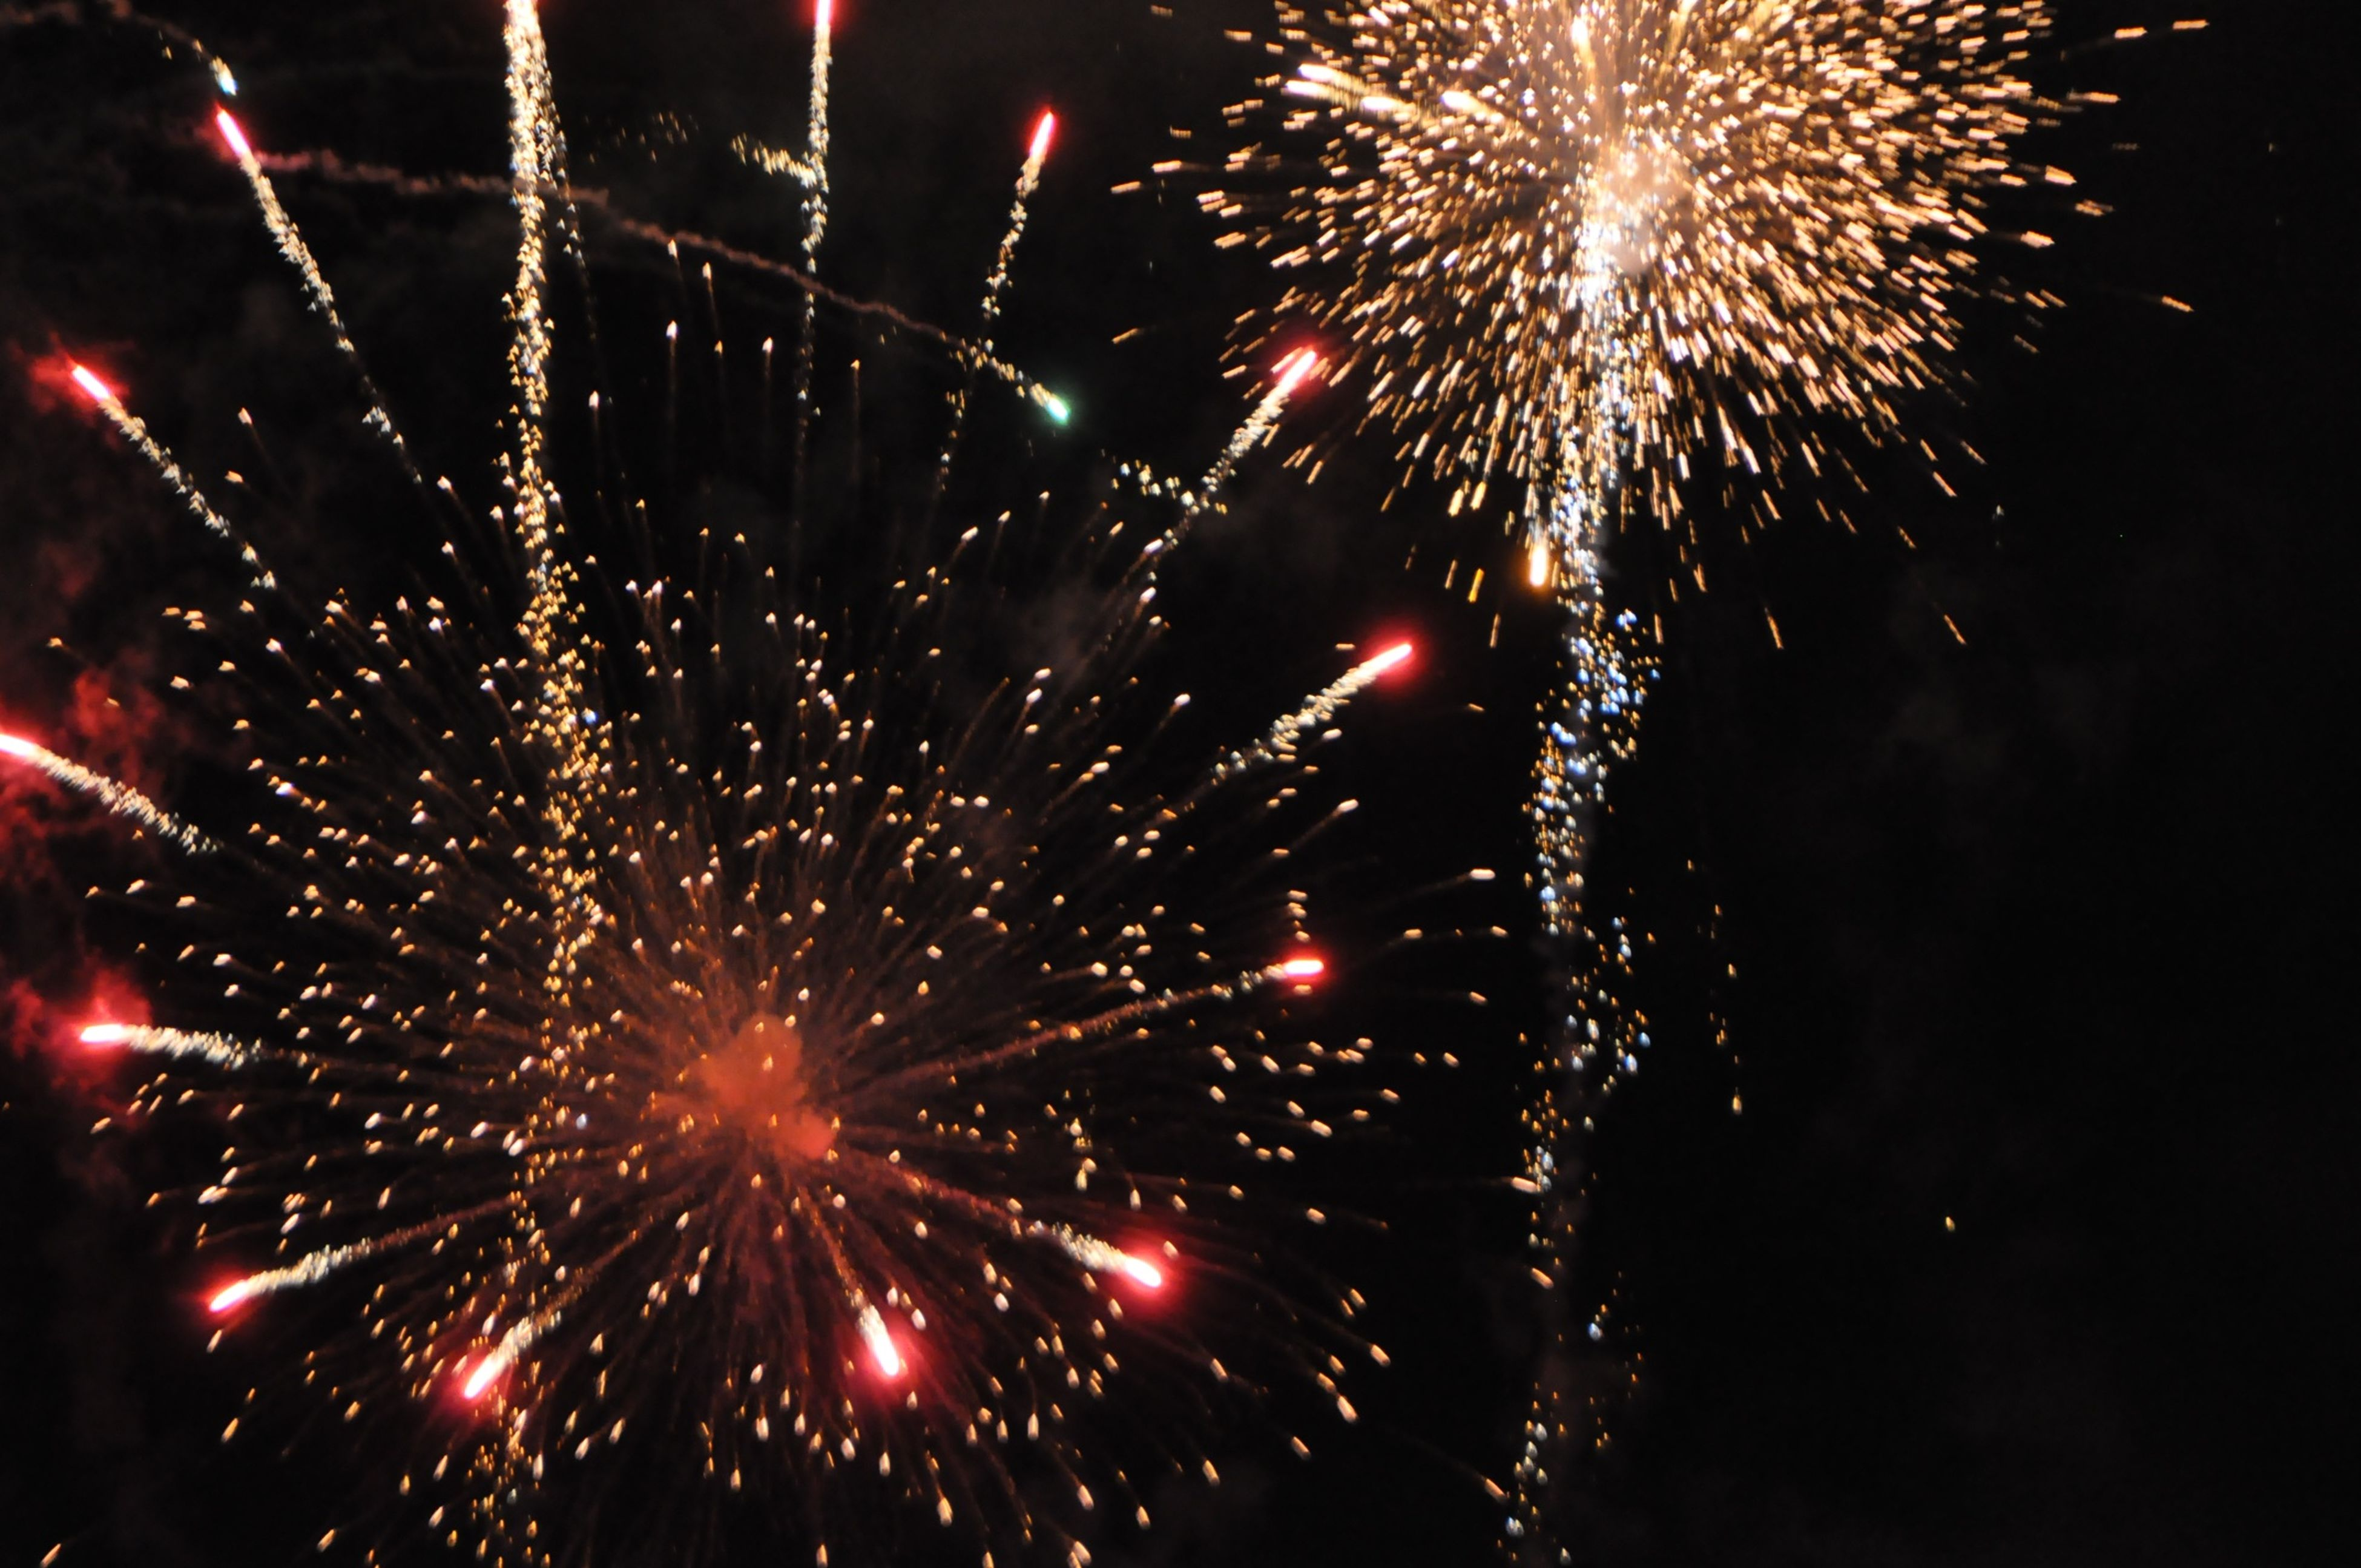 firework display, celebration, night, illuminated, exploding, firework - man made object, long exposure, event, glowing, motion, arts culture and entertainment, firework, sparks, entertainment, low angle view, celebration event, blurred motion, multi colored, sky, awe